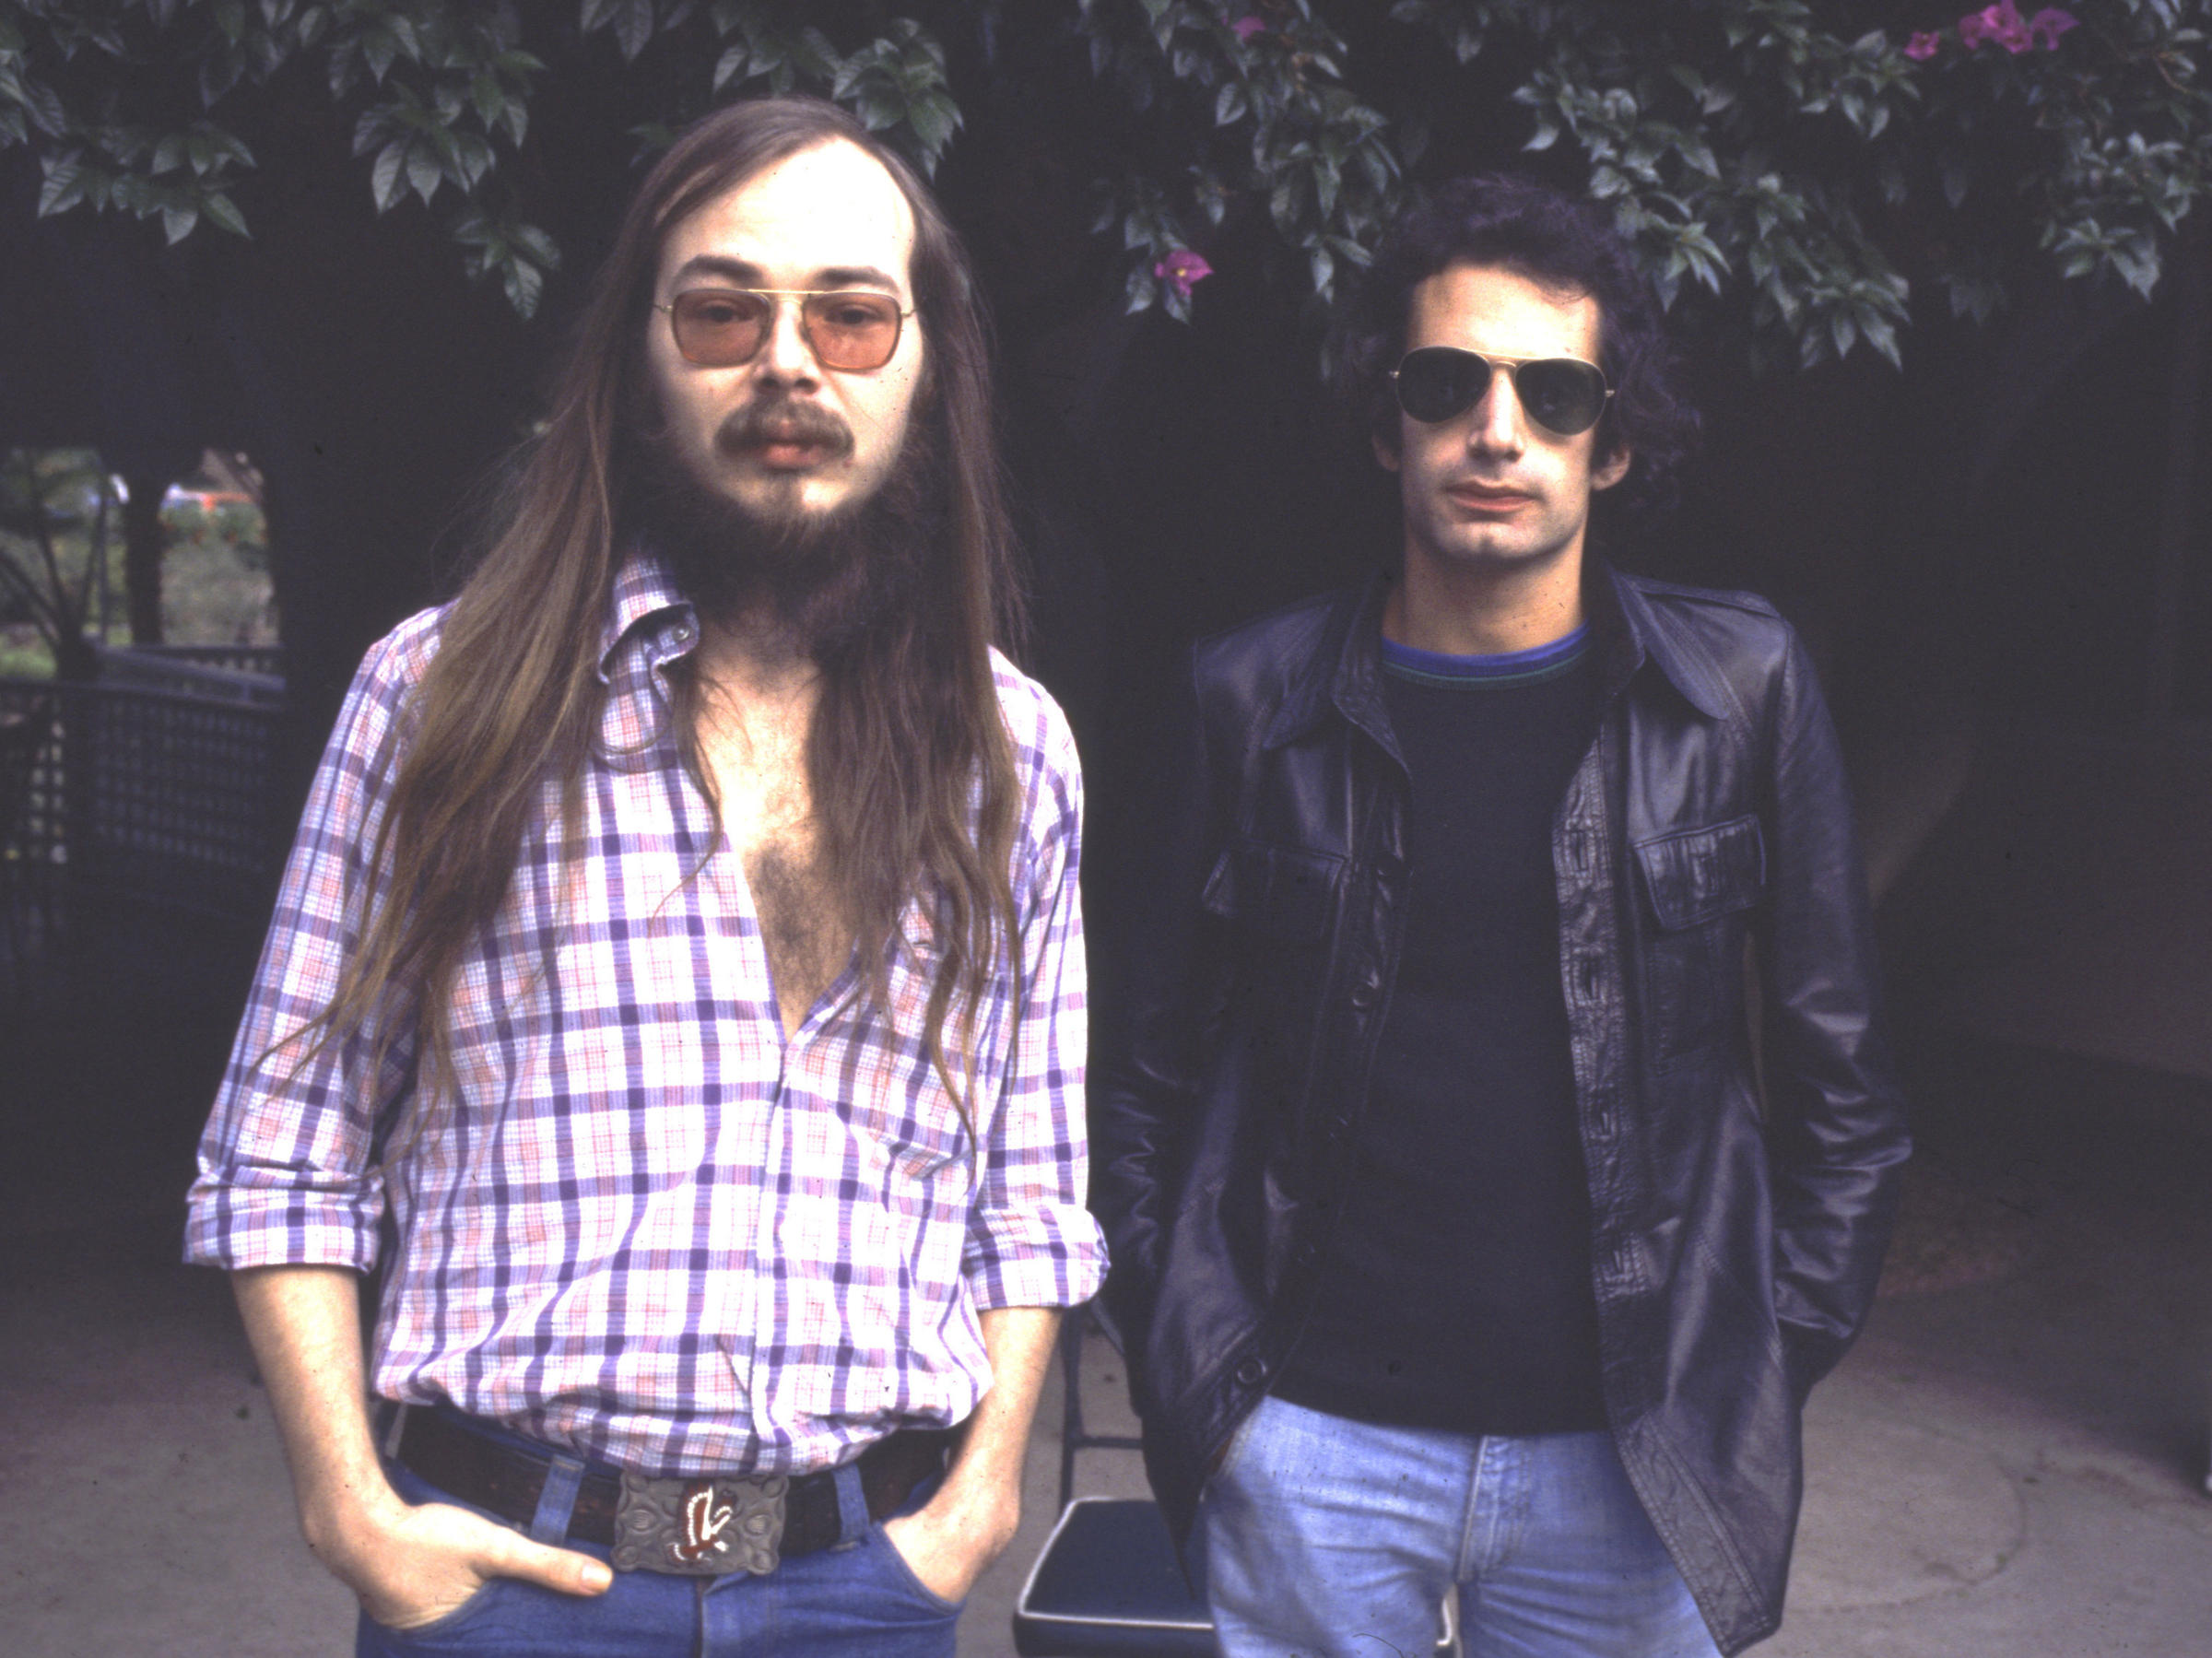 Steely Dan co-founder Walter Becker dies at age 67